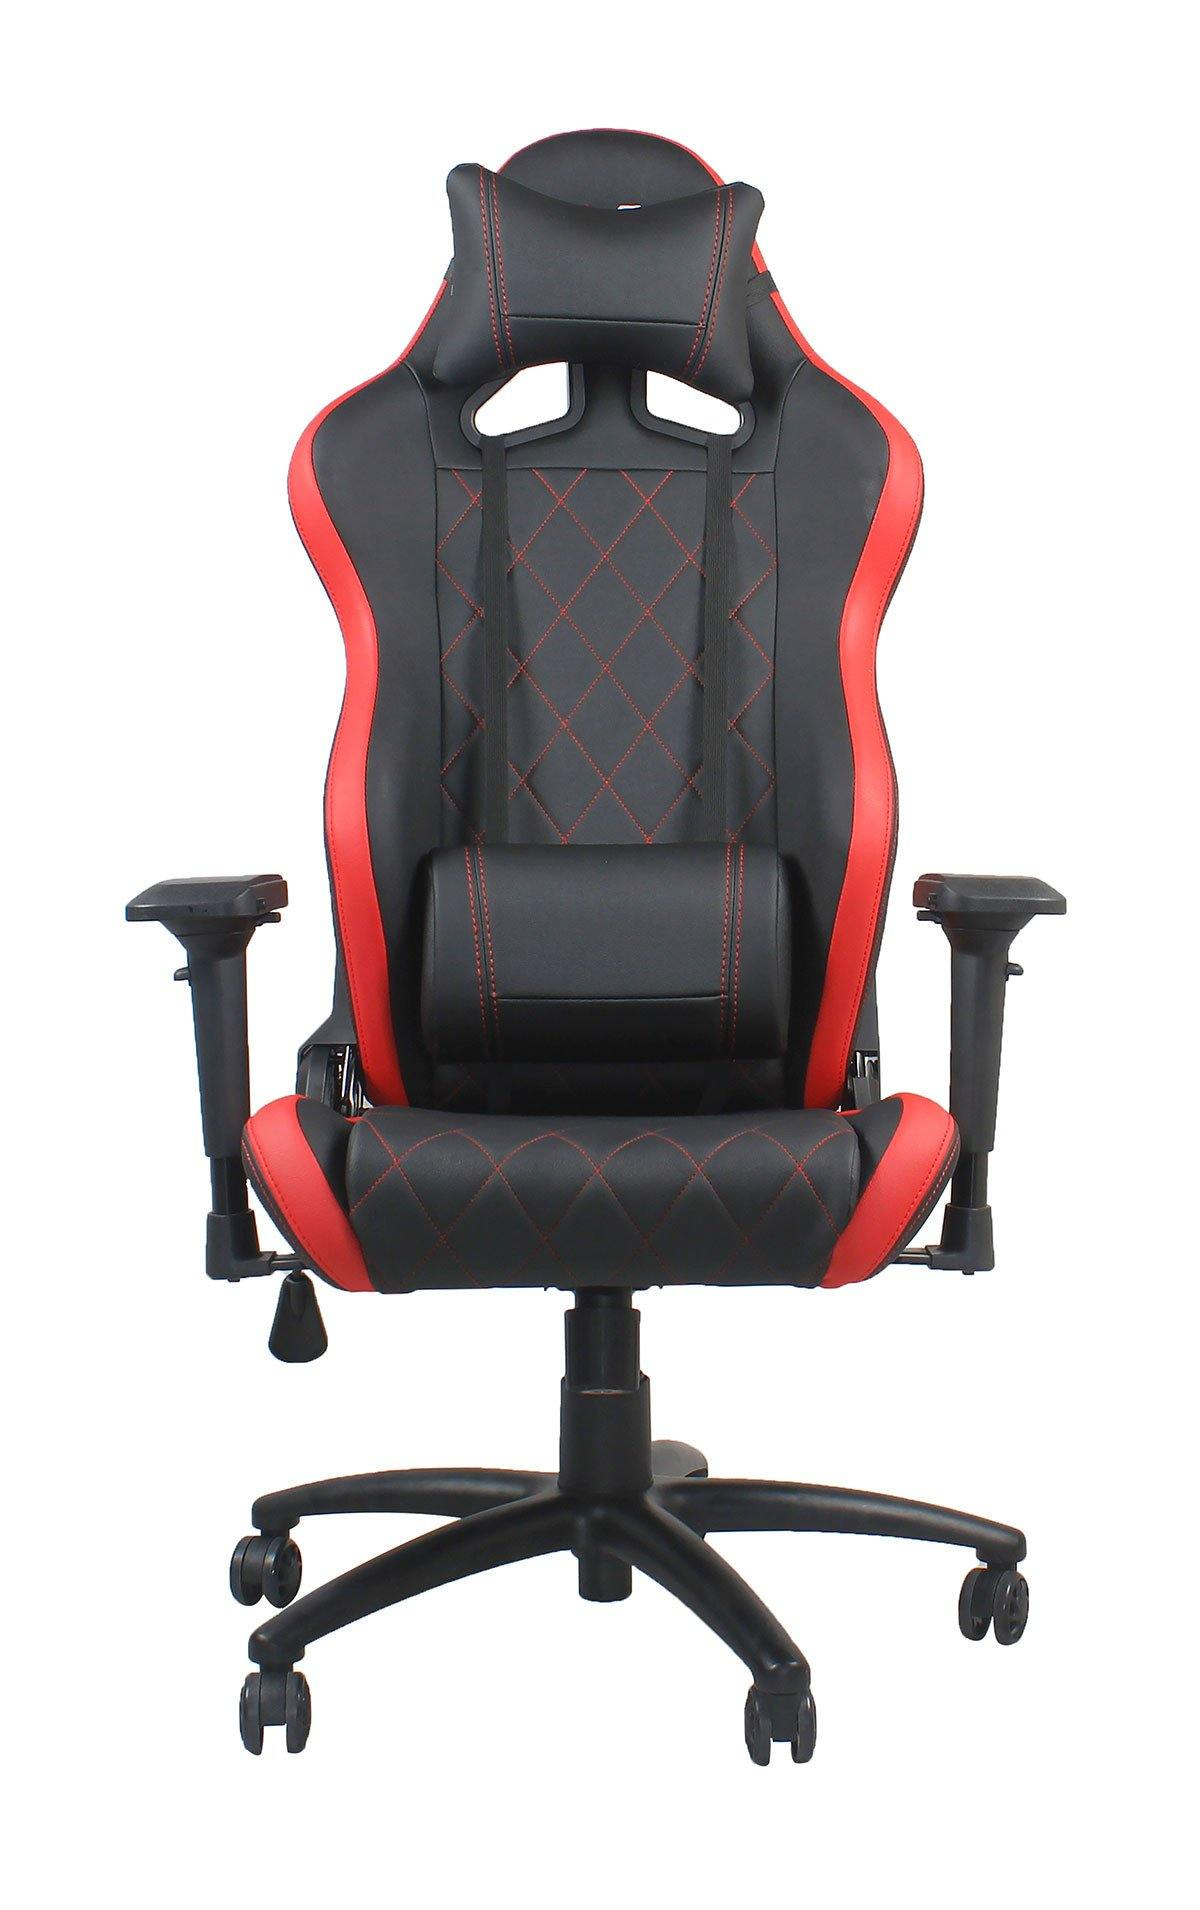 Ferrino Chair Red on Black – RapidX